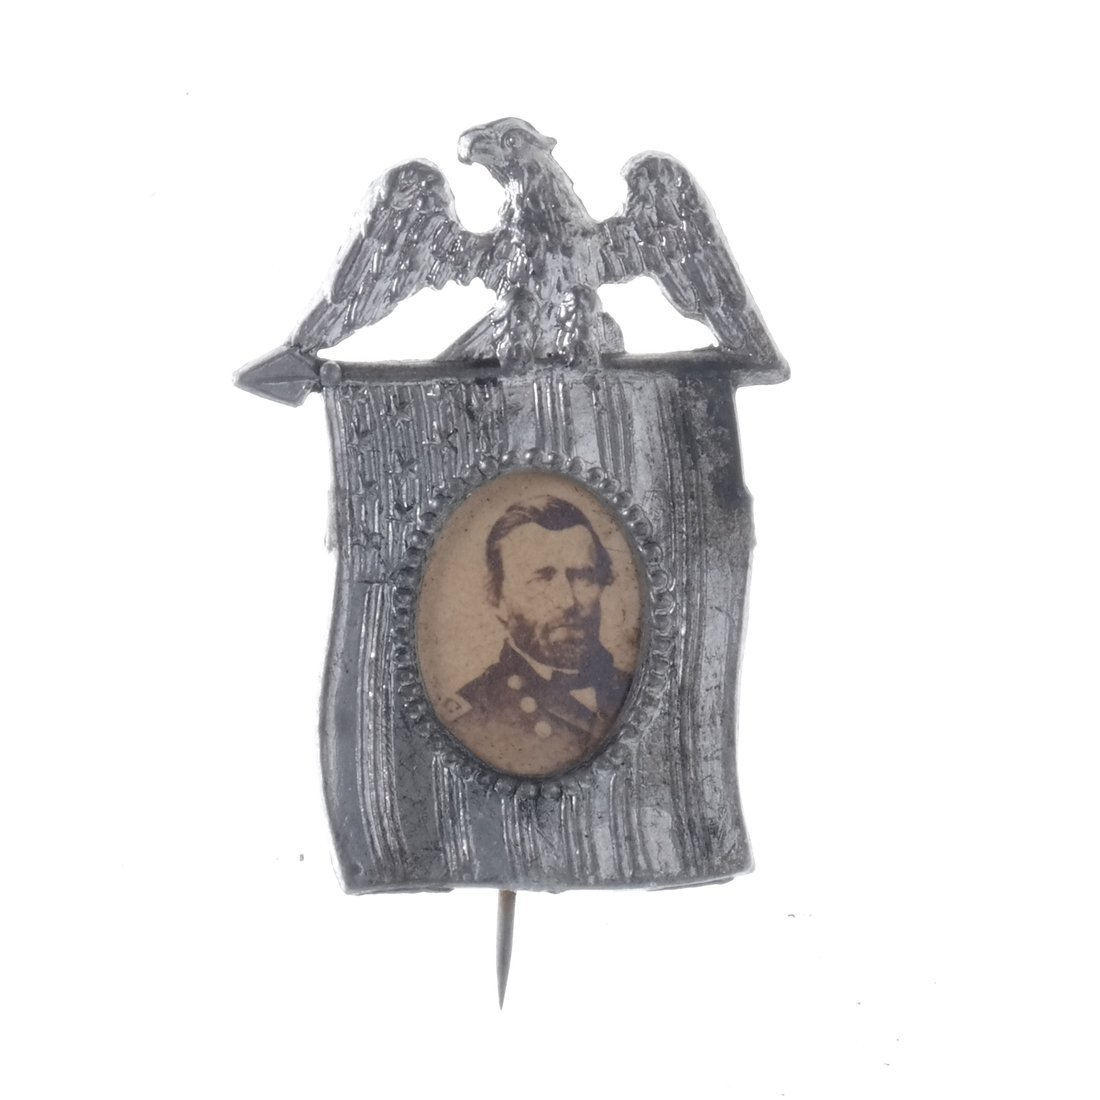 U.S. Grant Five Gem-Size Portrait Stickpins - 4